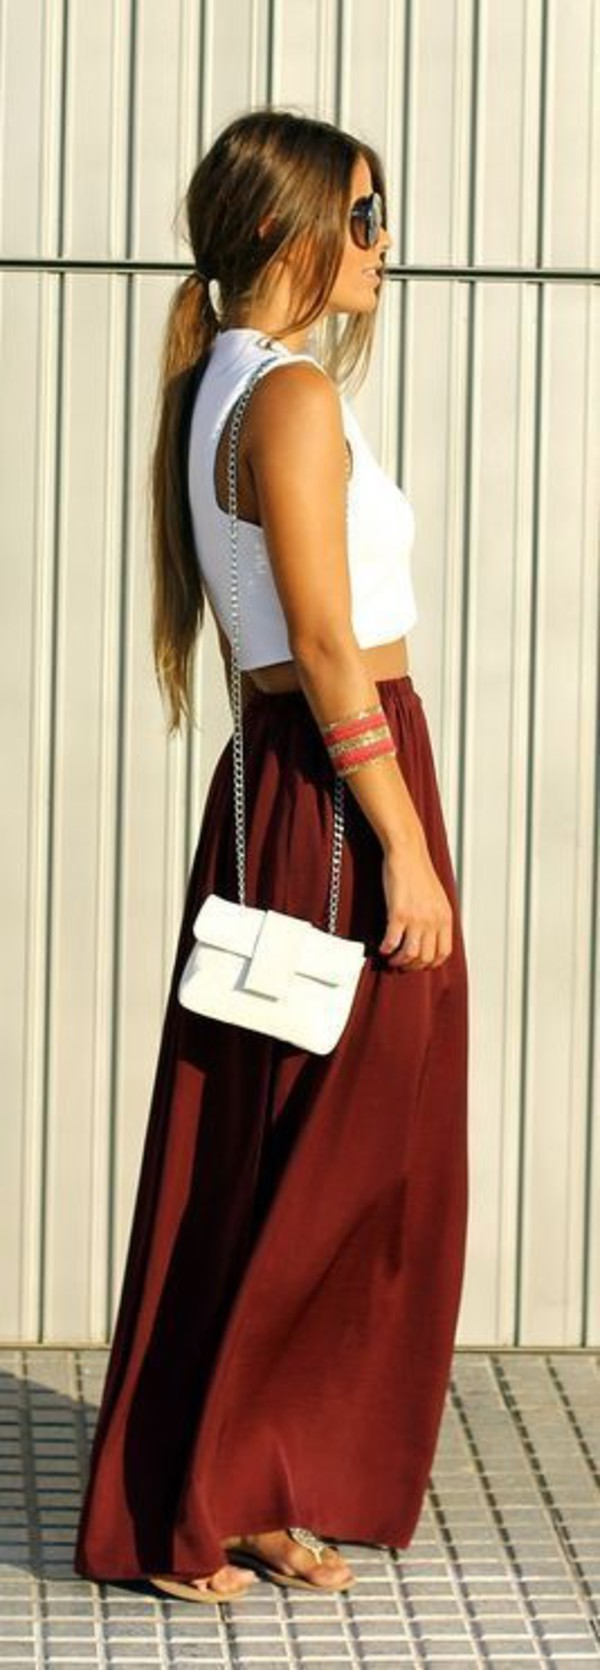 skirt dark red maxi skirt shirt long burgendy burgundy skirt burgundy high wasteted flowy free maxi skirt maxi dress crop tops fashion tumblr tumblr girl tumblr clothes clothes boho dress boho love